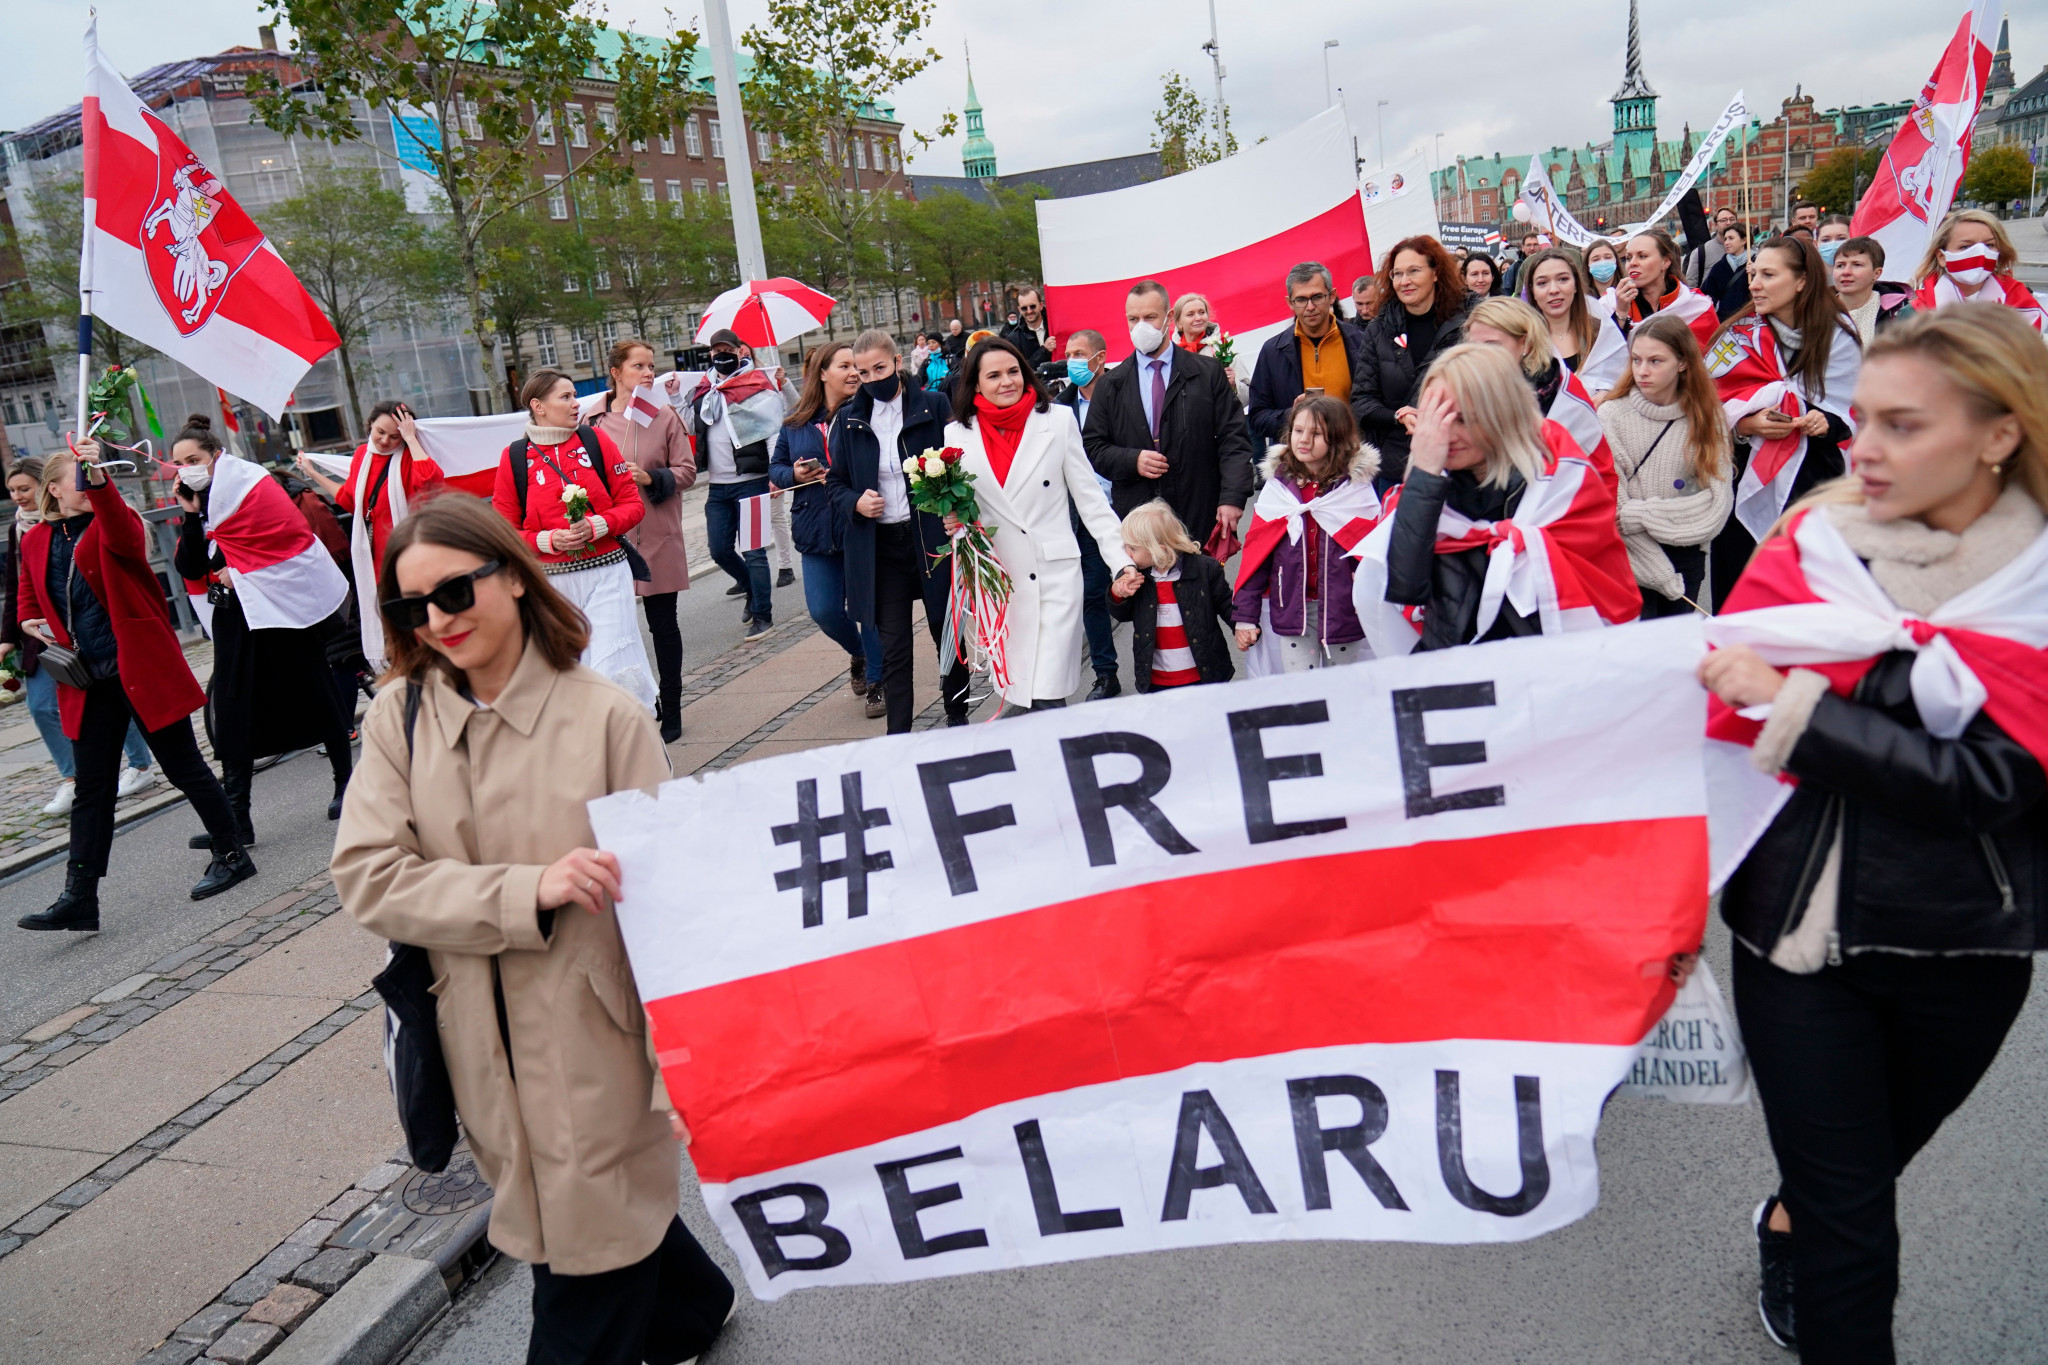 Protests in Belarus against President Alexander Lukashenko have led to calls for the IIHF to strip the country of the hosting rights for the 2021 World Championship ©IIHF